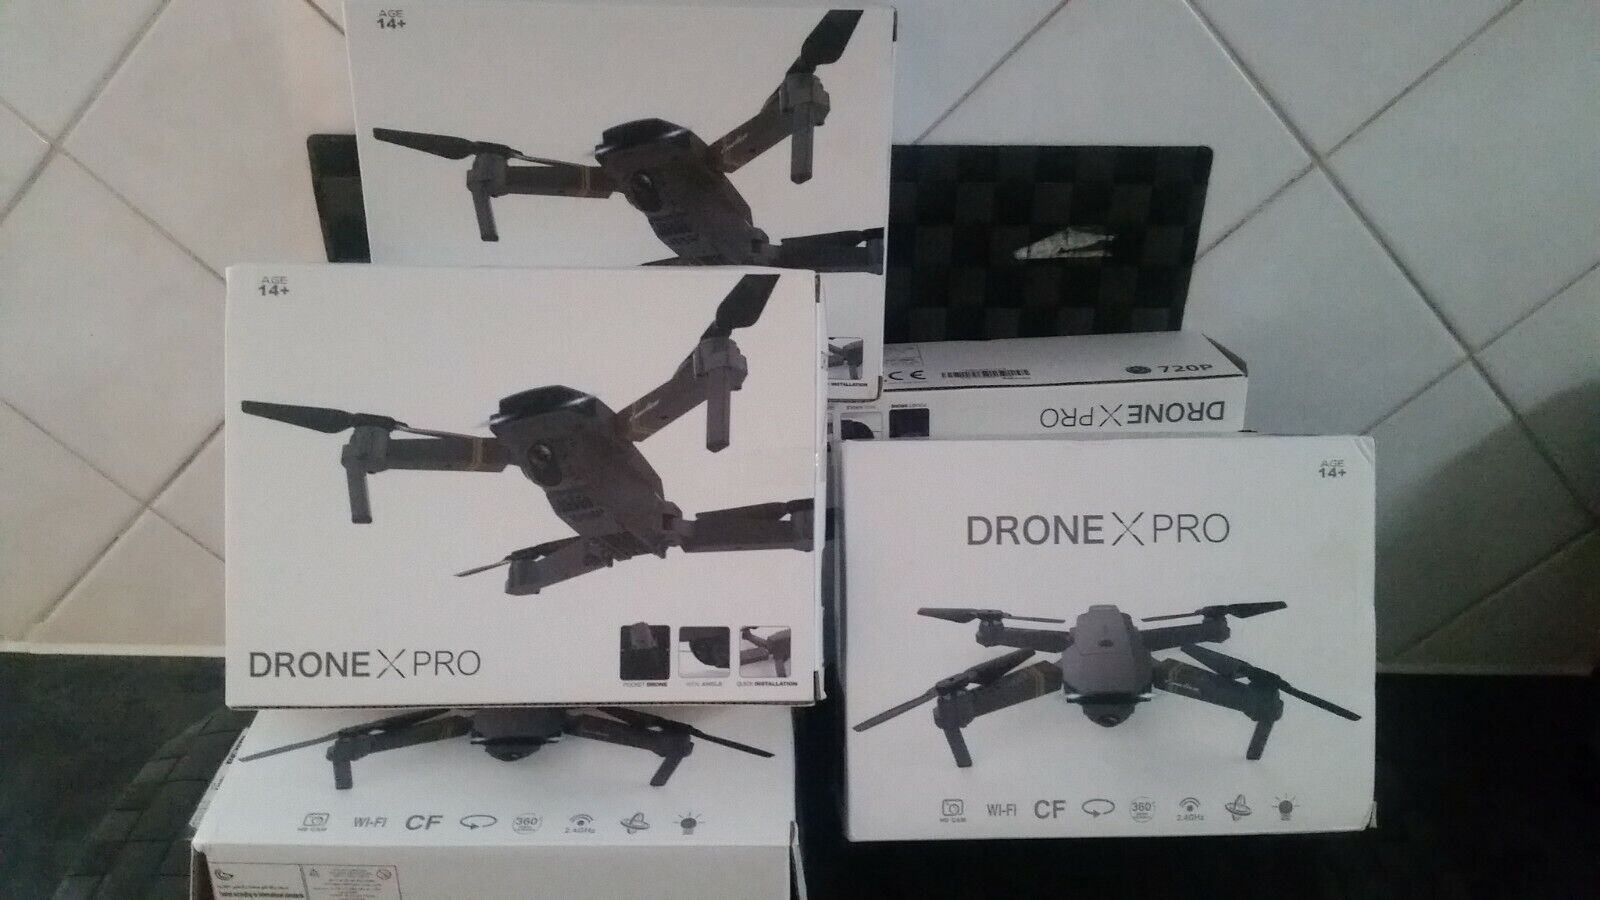 Drone X Pro Foldable Quadcopter +720P HD Camera|WiFi FPV GPS BatteriesRC \ New/